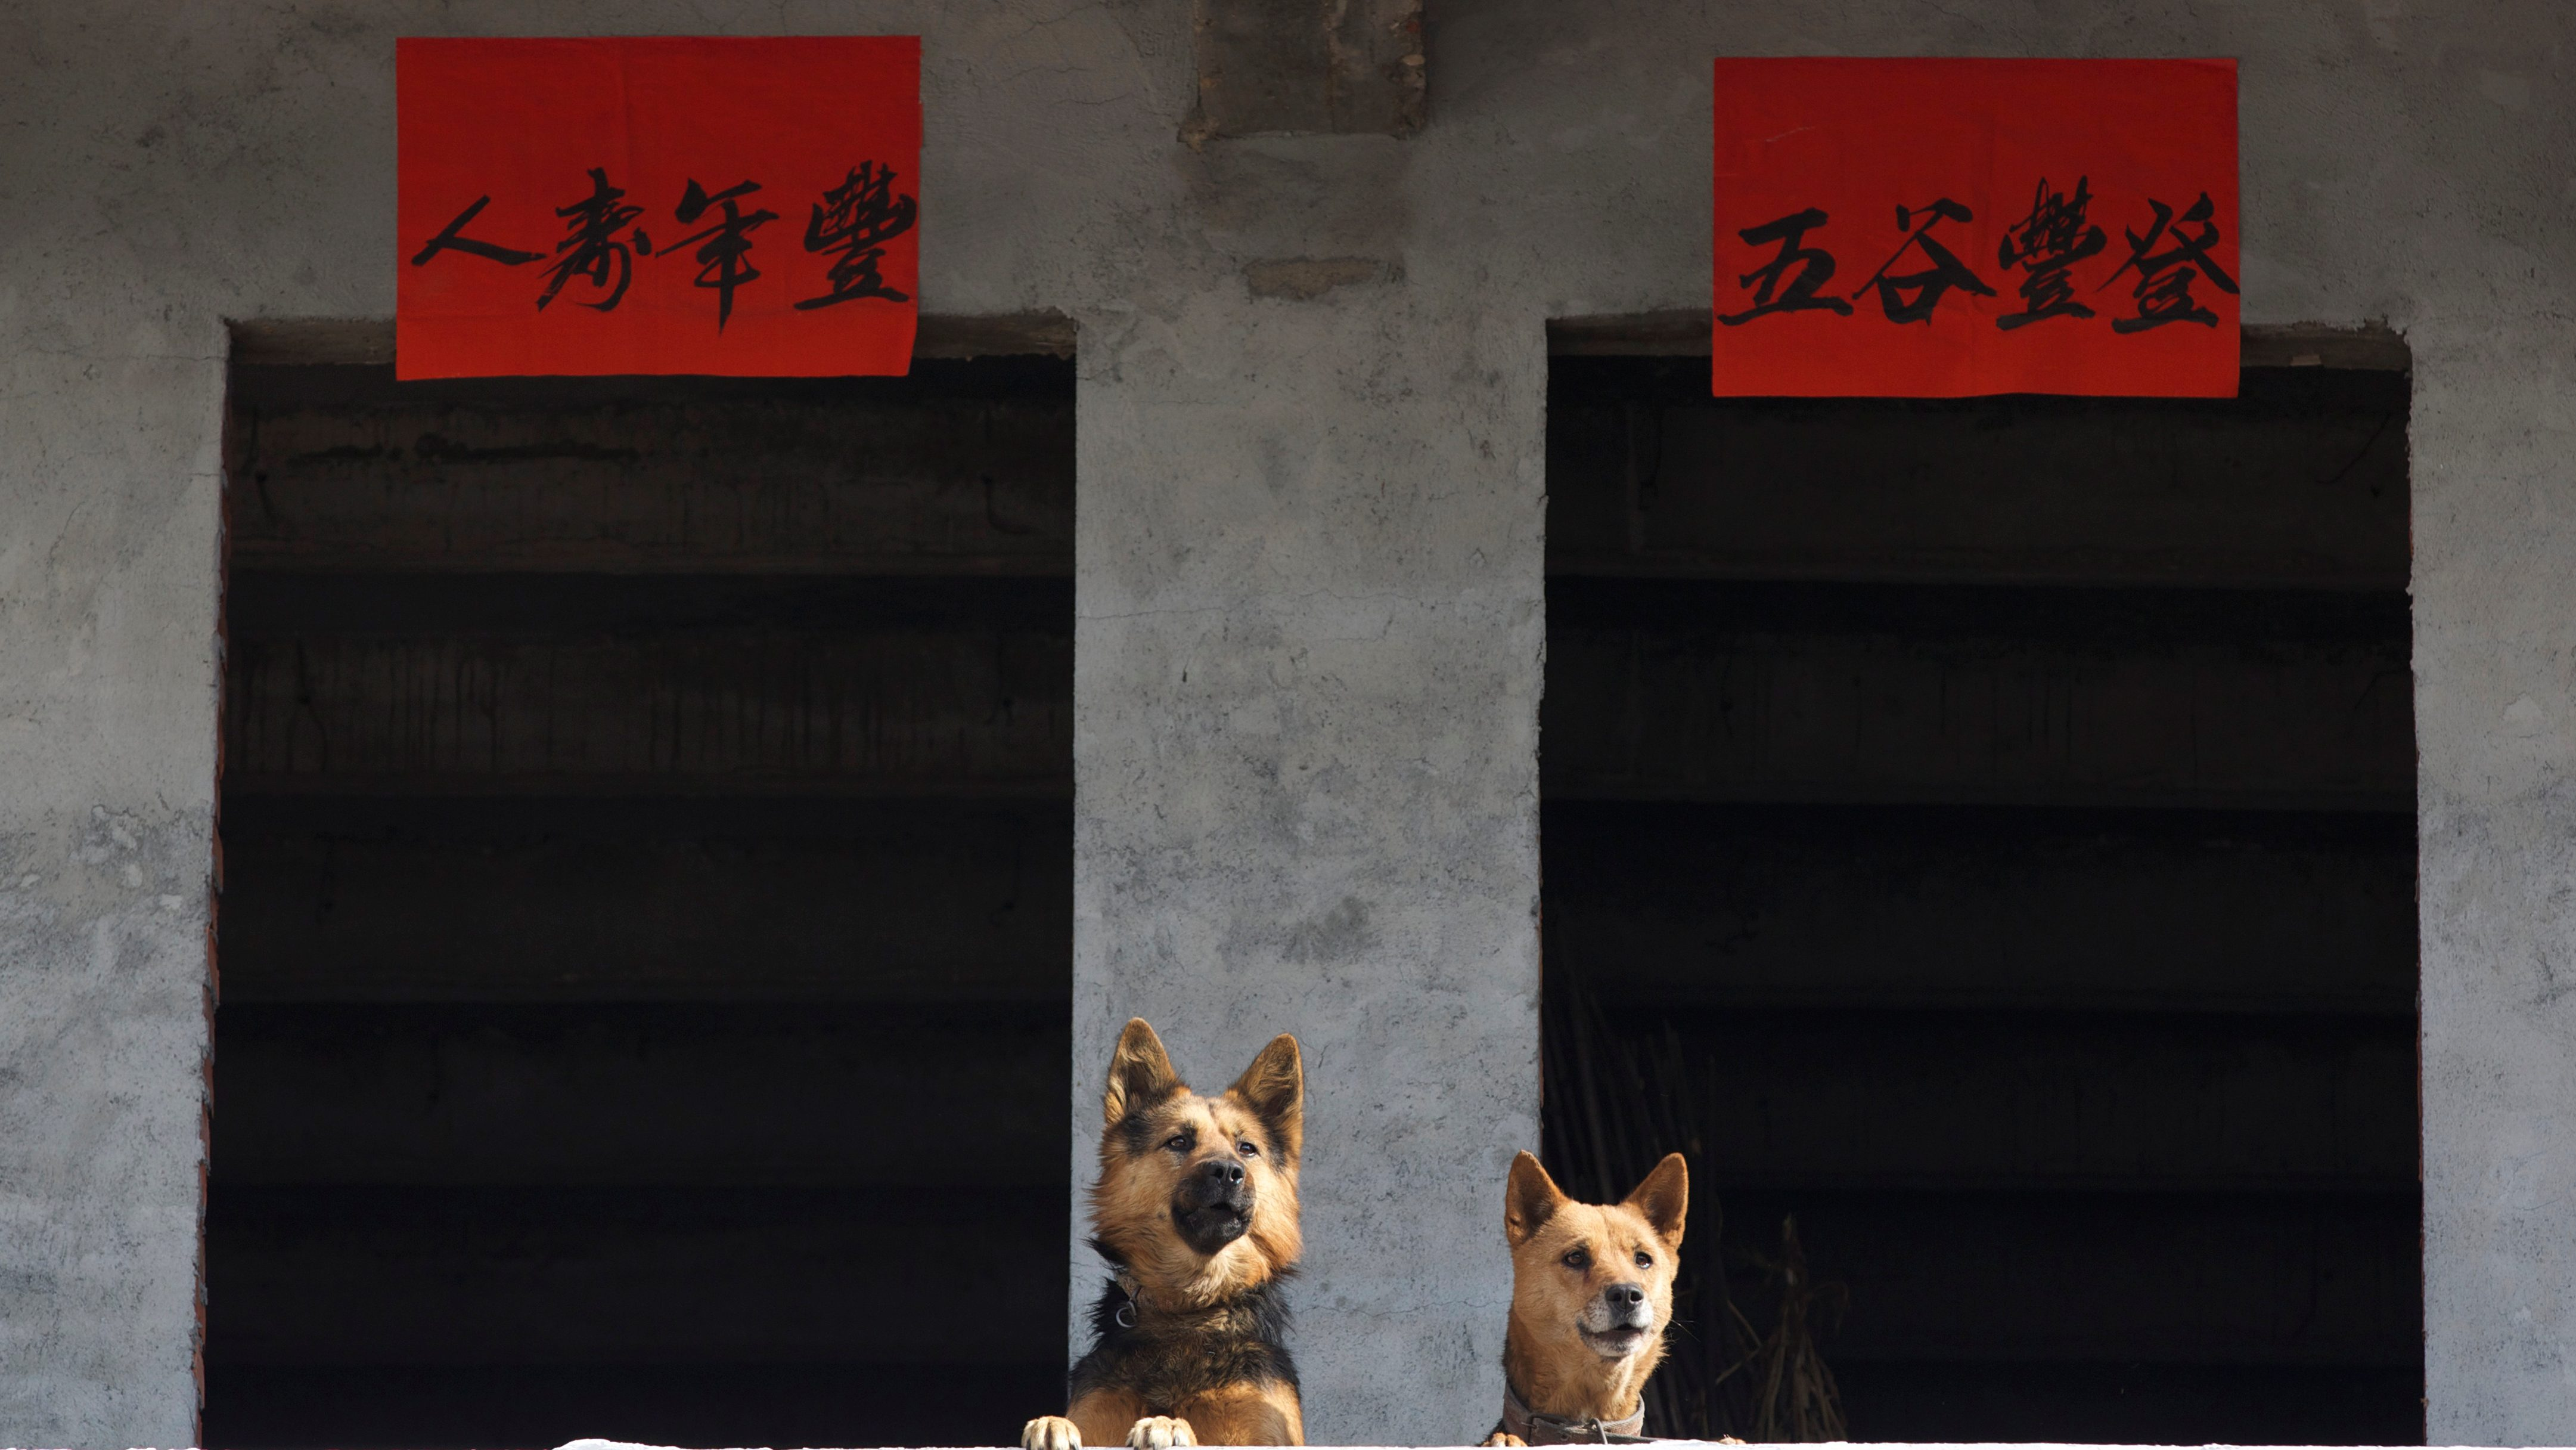 Year of the dog your day by day guide for celebrating chinese new year of the dog your day by day guide for celebrating chinese new year in 2018 quartz buycottarizona Choice Image